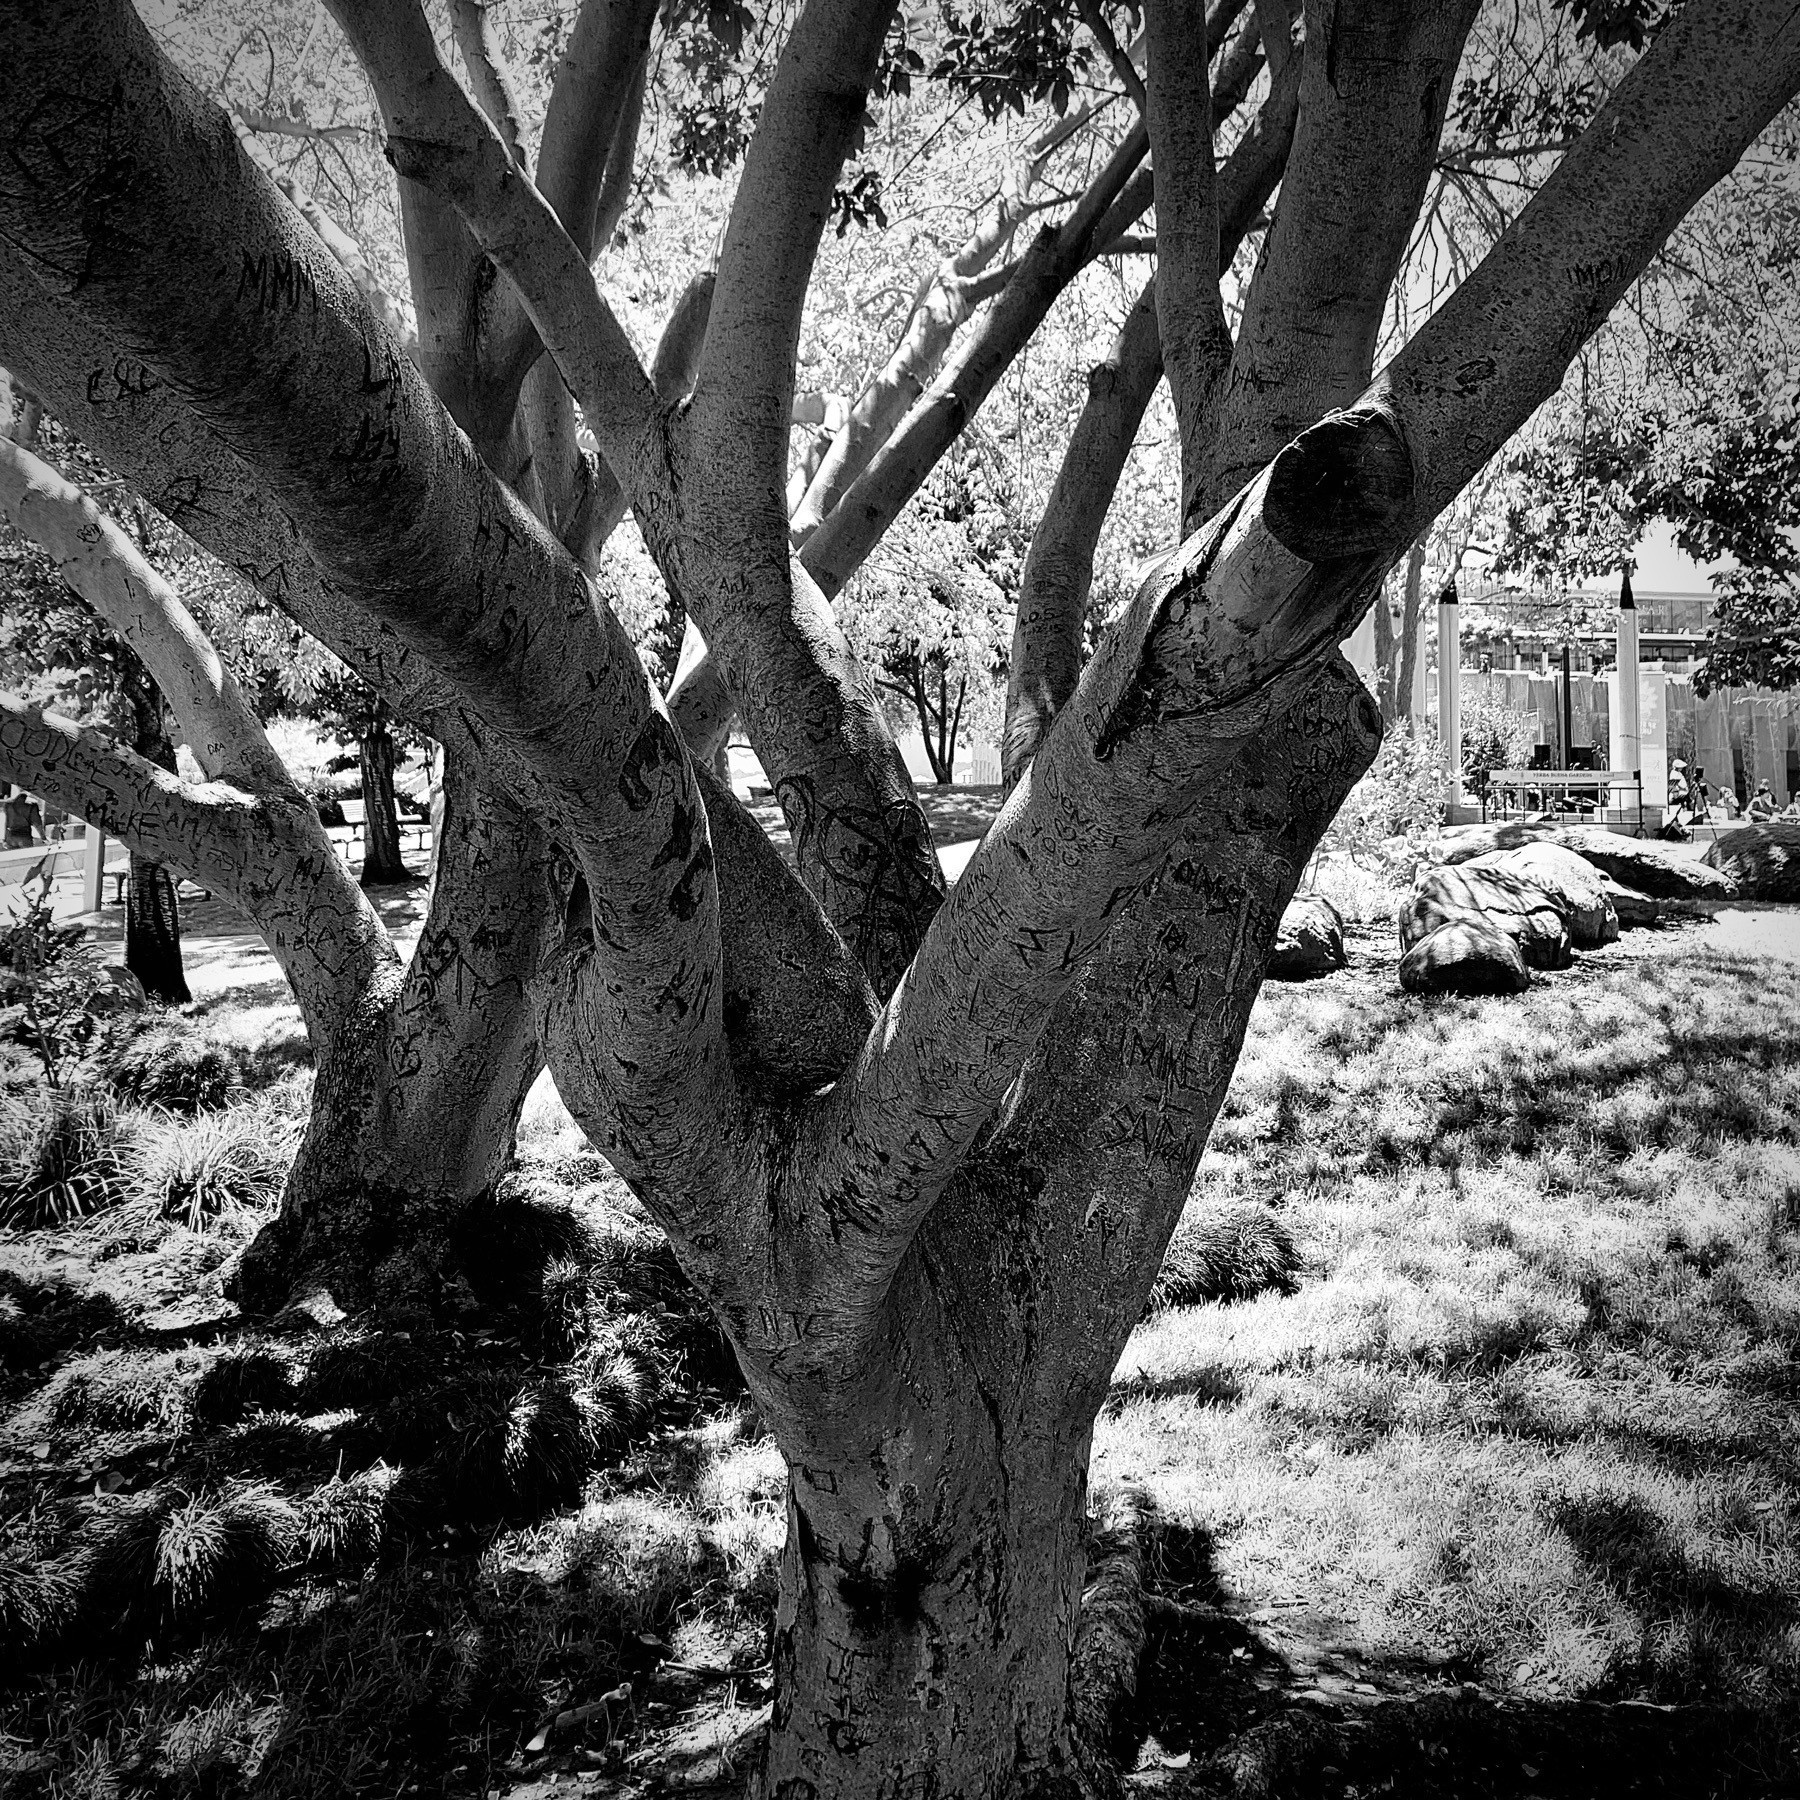 Close-up black and white tree trunk with many branches.